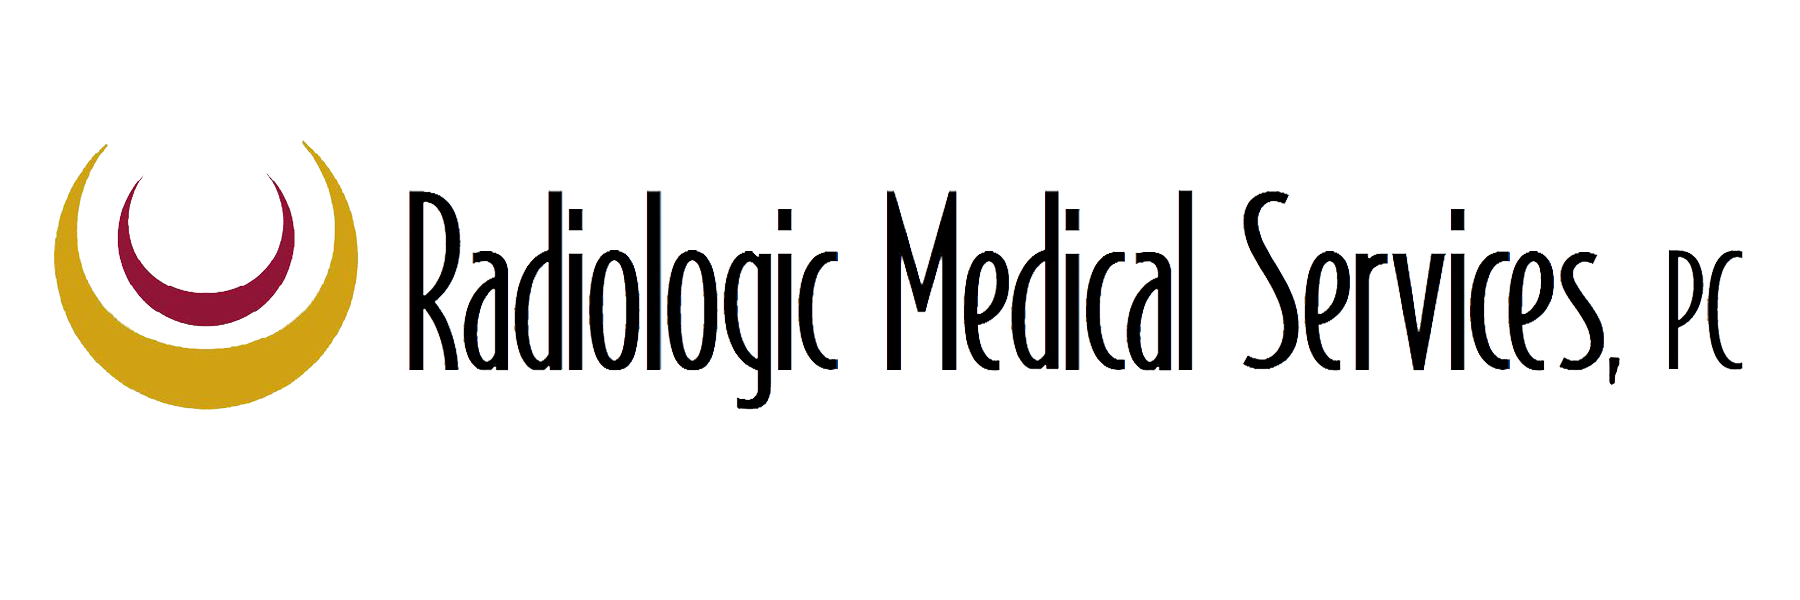 Radiologic Medical Services, Coralville, IA